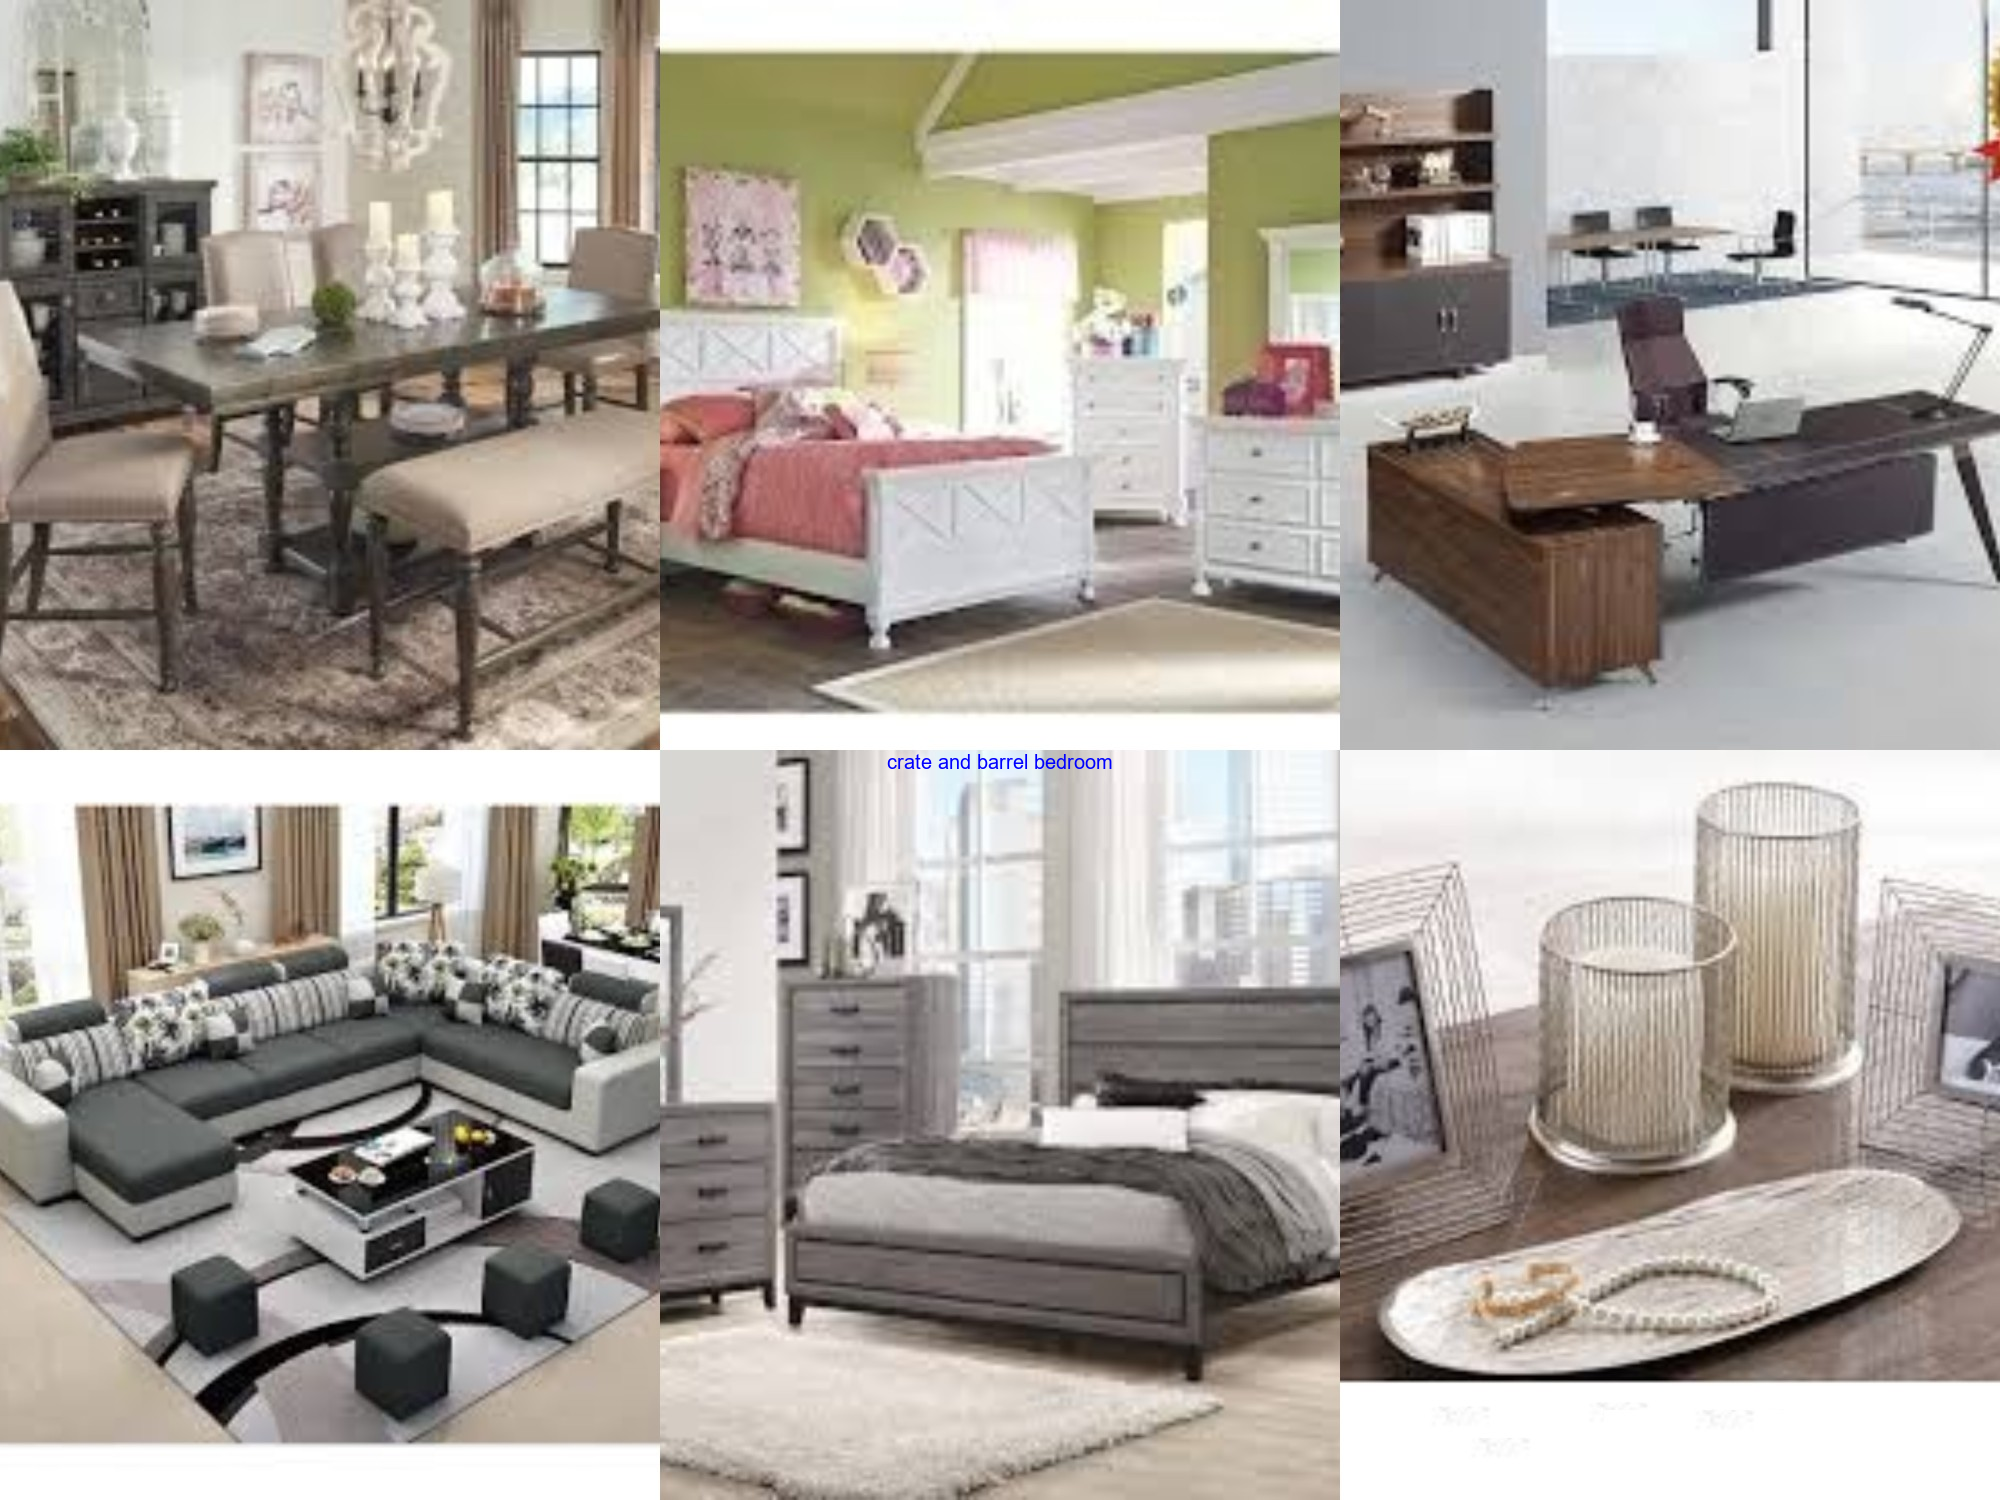 crate and barrel bedroom - i would recommend that you visit